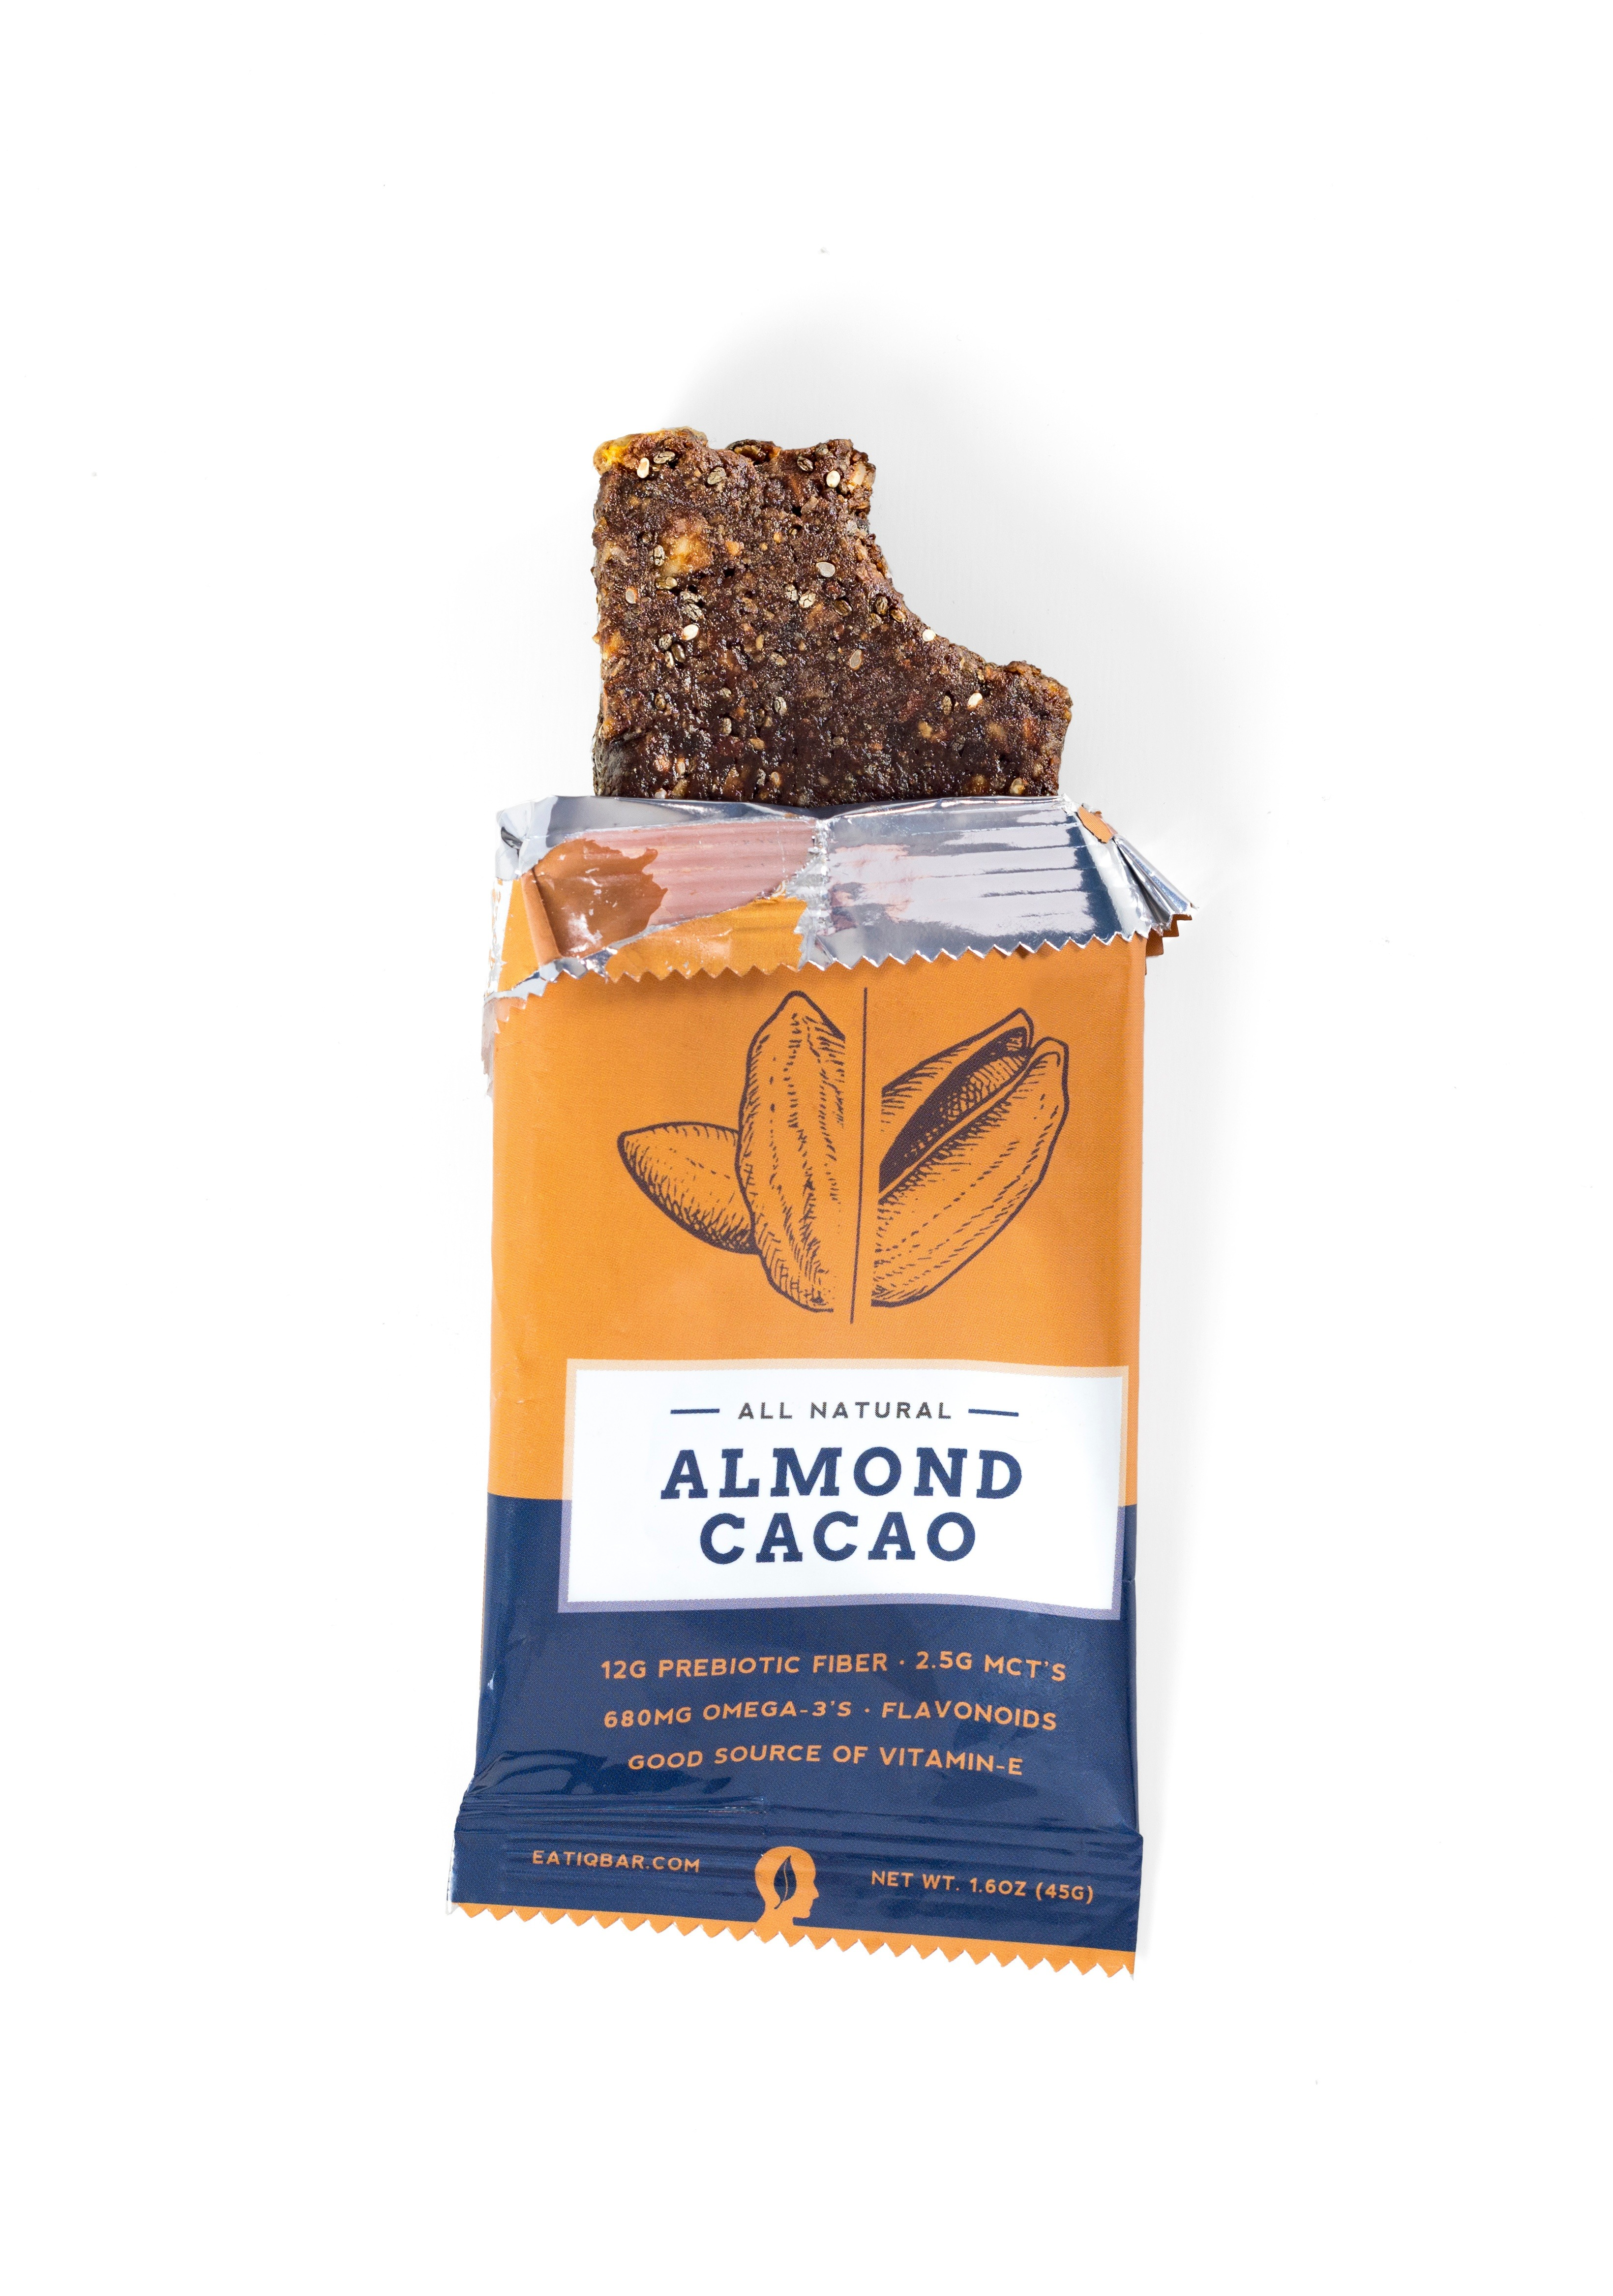 IQ Bar Almond Cacao Package Unwrapped.jpg